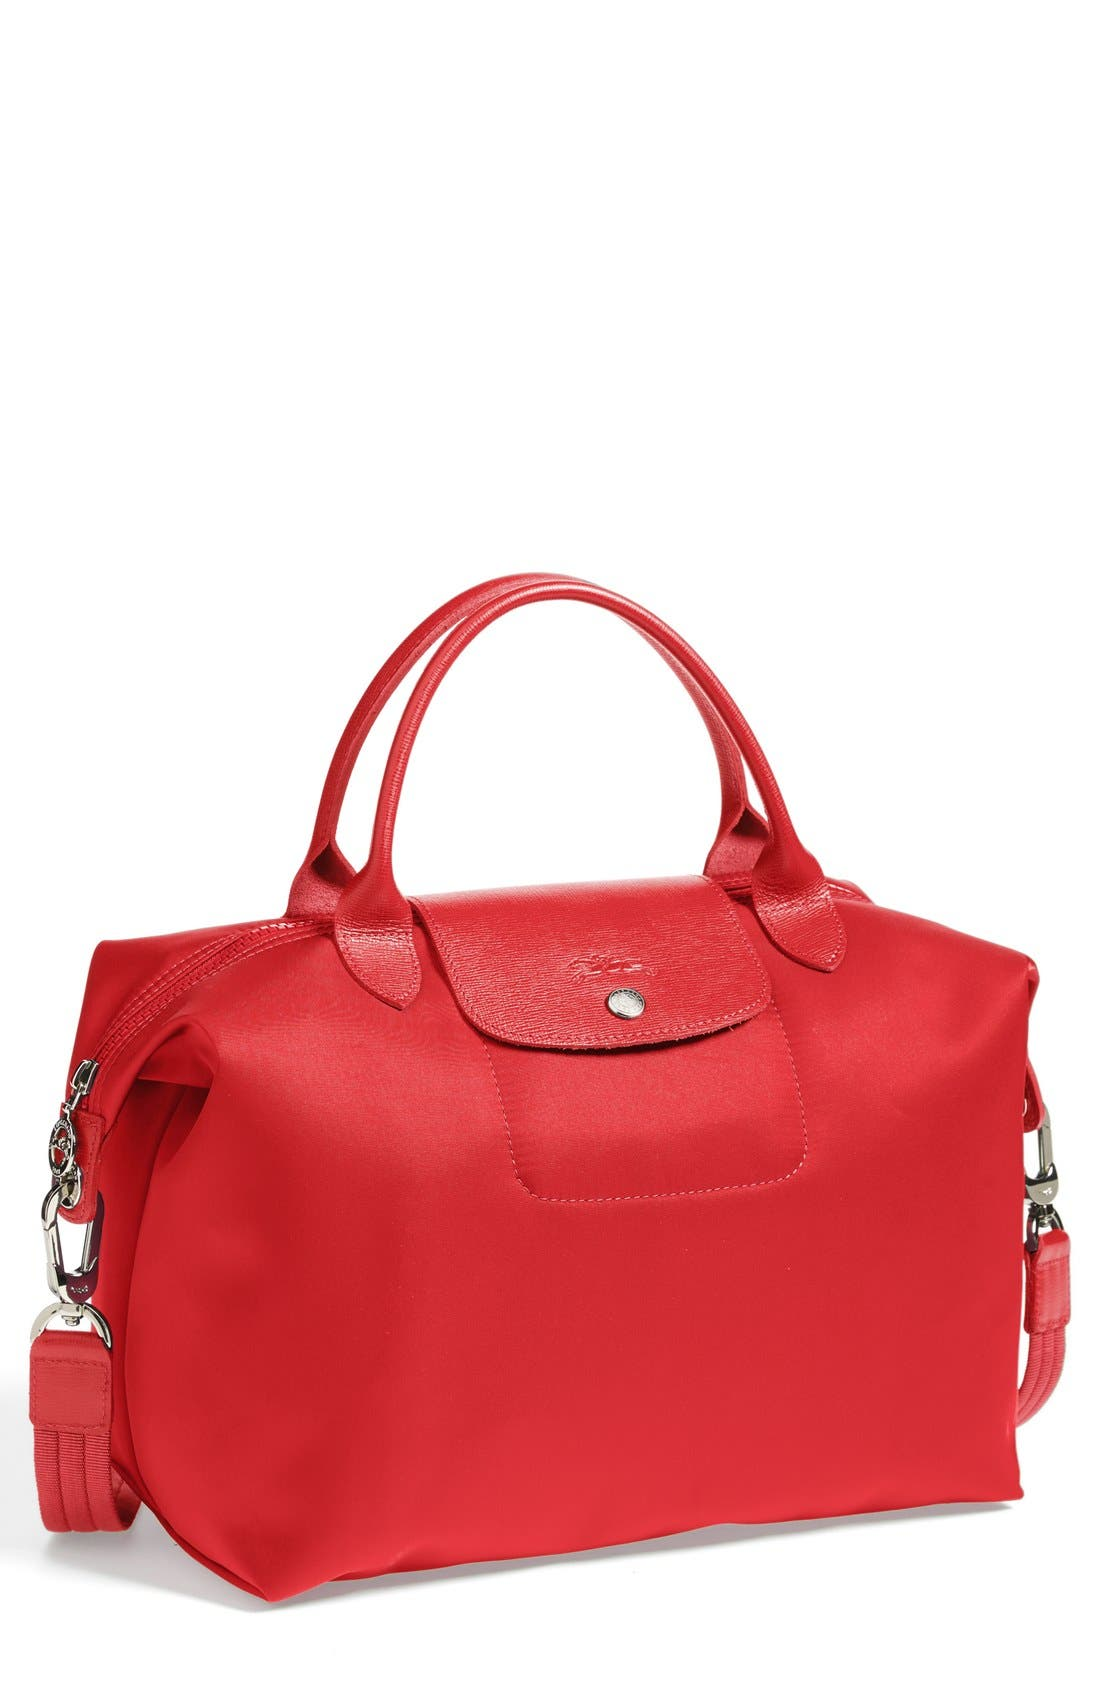 Main Image - Longchamp 'Le Pliage Neo - Medium' Tote